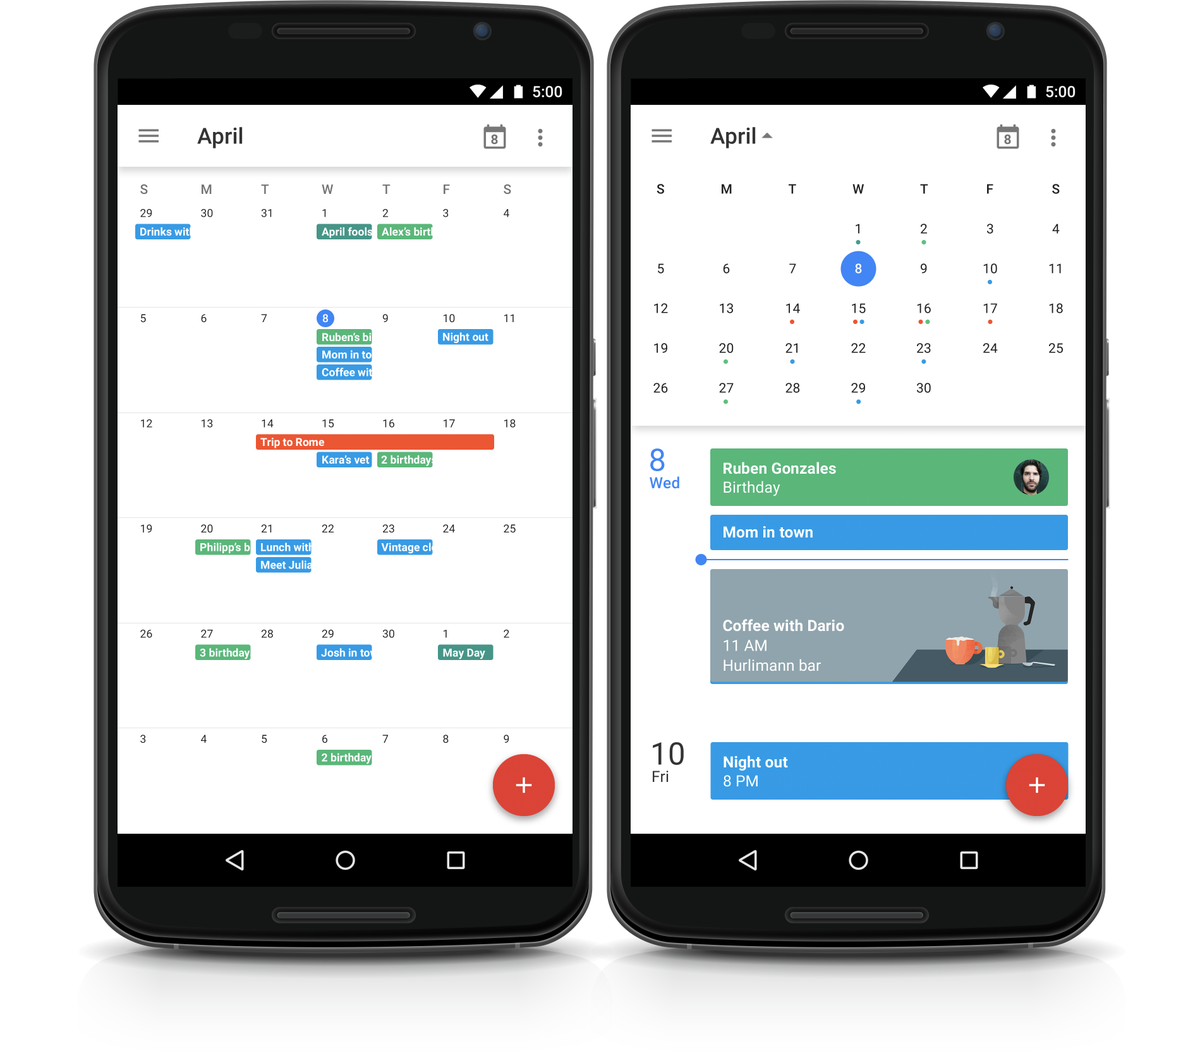 Month view is coming (back) to Google Calendar for Android: https://t.co/bC0bTFgYel http://t.co/aQ5EYQy0D9